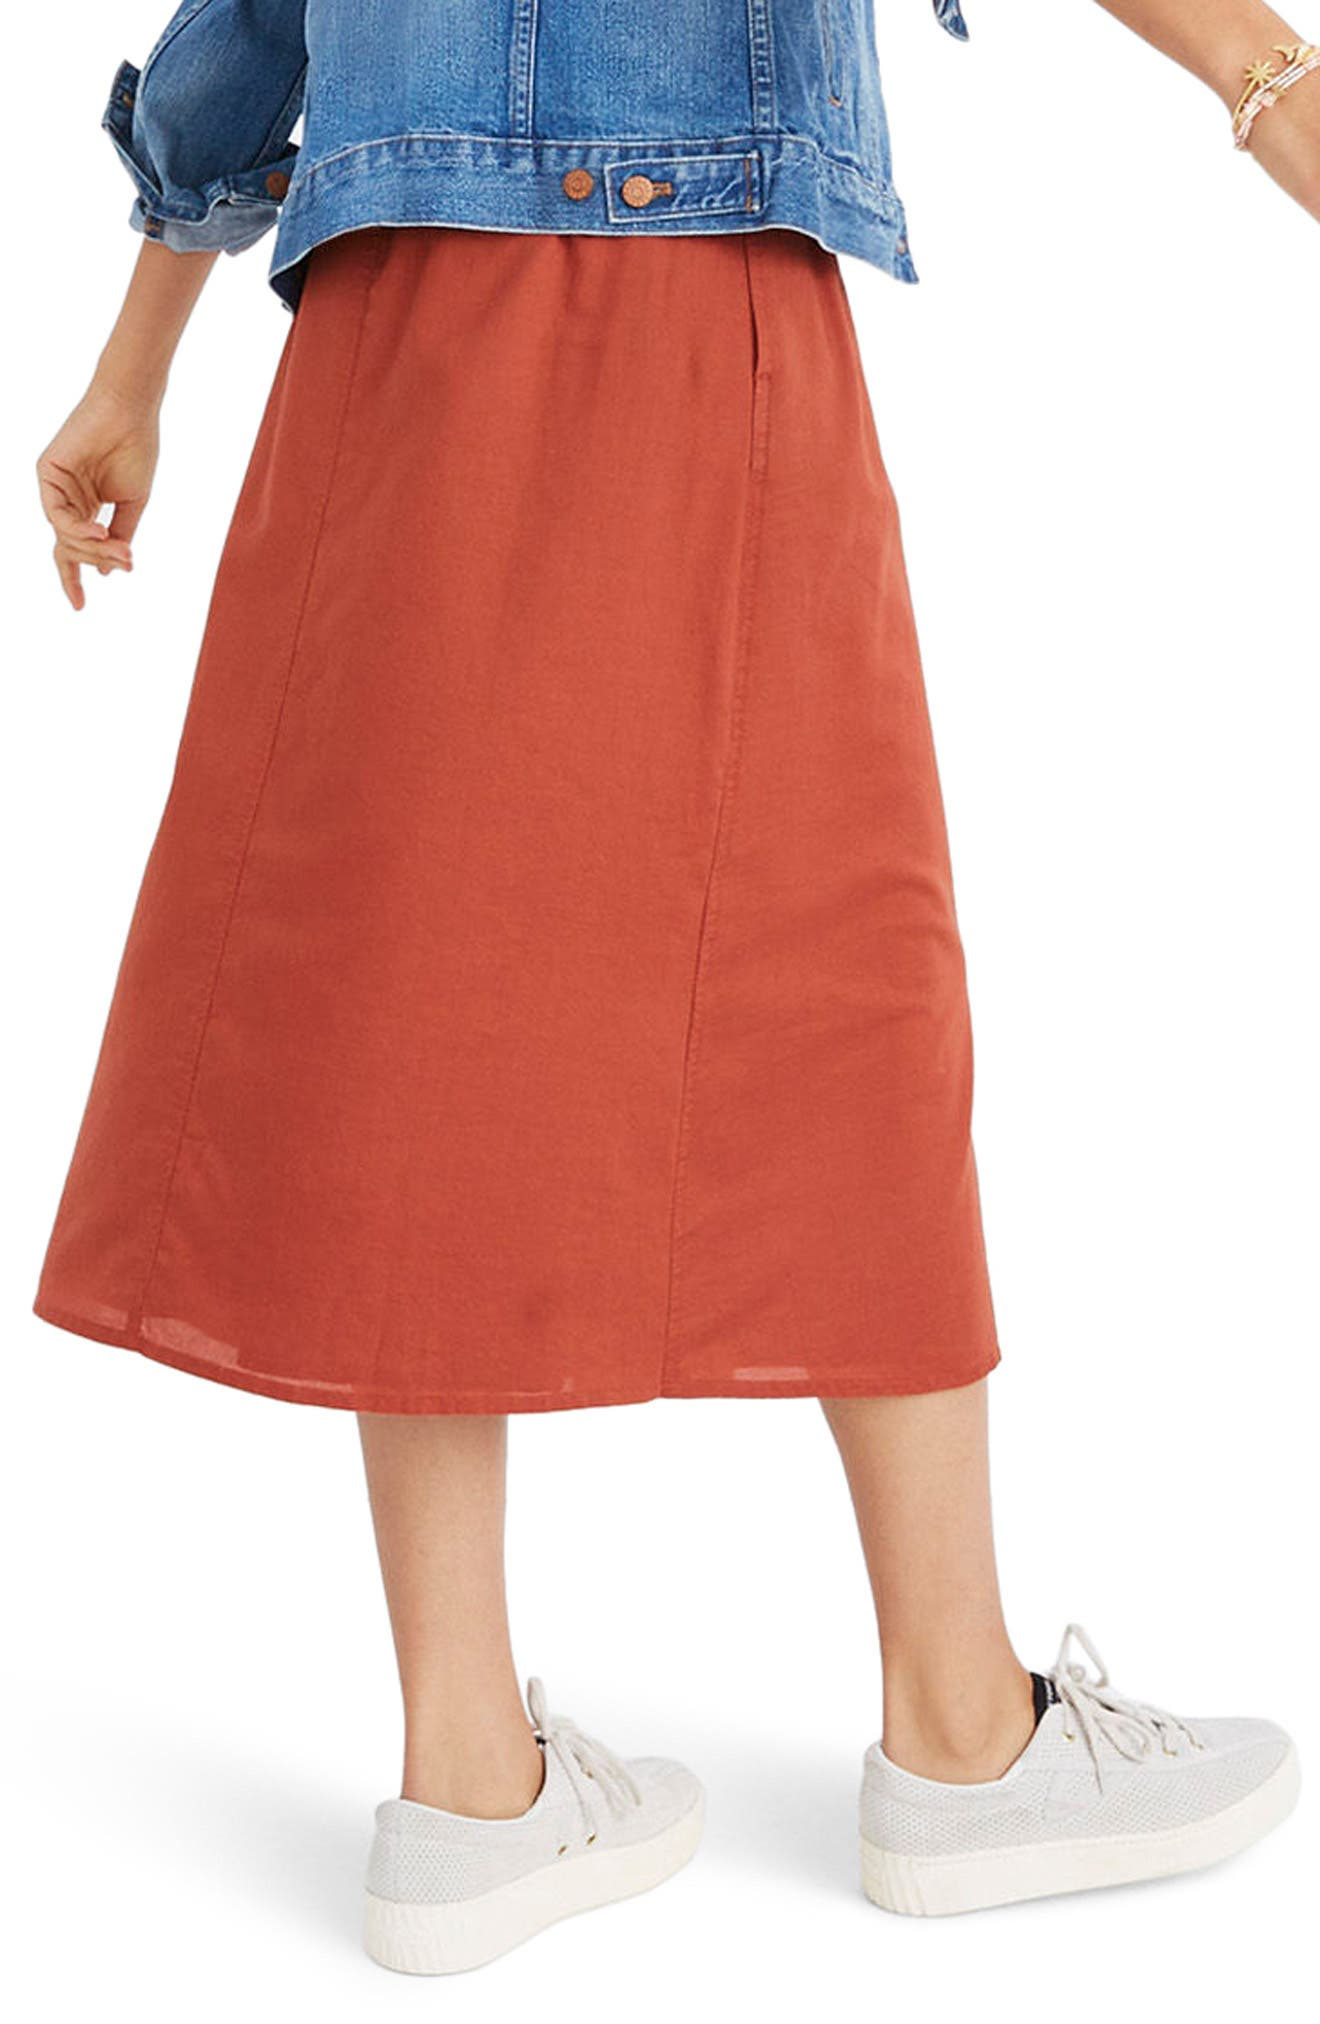 Palisade Button Front Midi Skirt,                             Alternate thumbnail 2, color,                             800